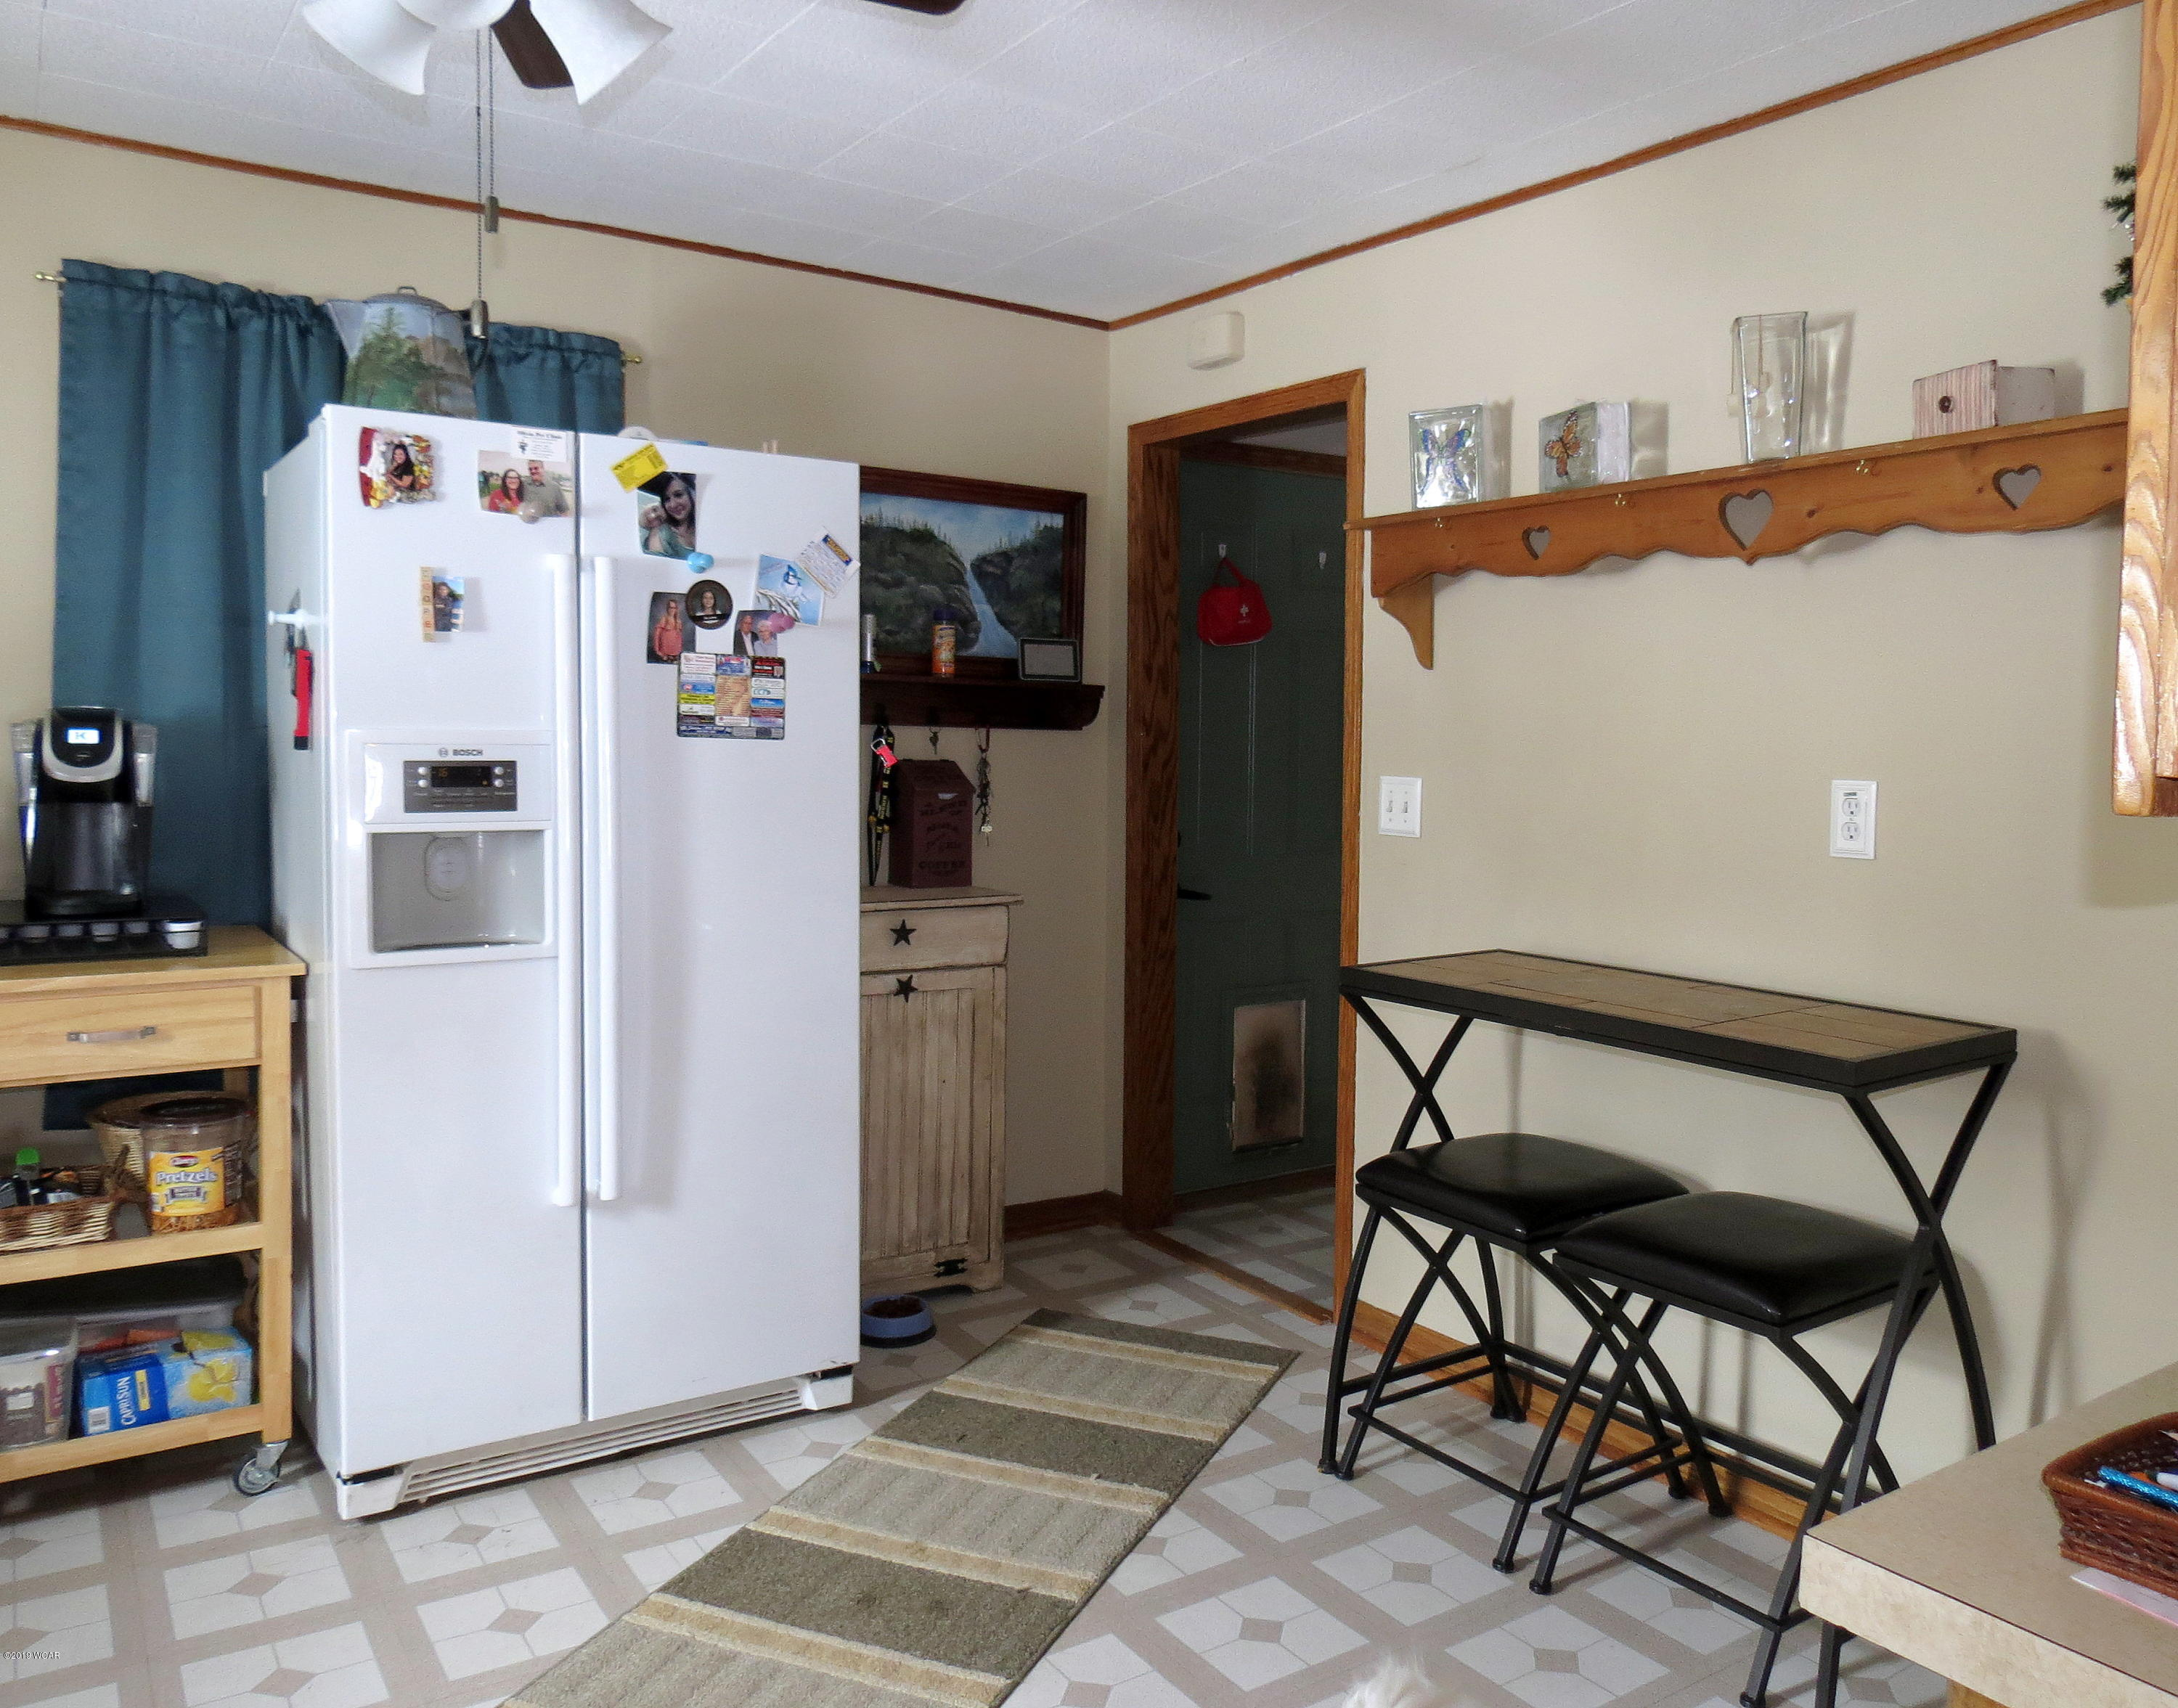 104 S 11th Street,Olivia,3 Bedrooms Bedrooms,1 BathroomBathrooms,Single Family,S 11th Street,6033033